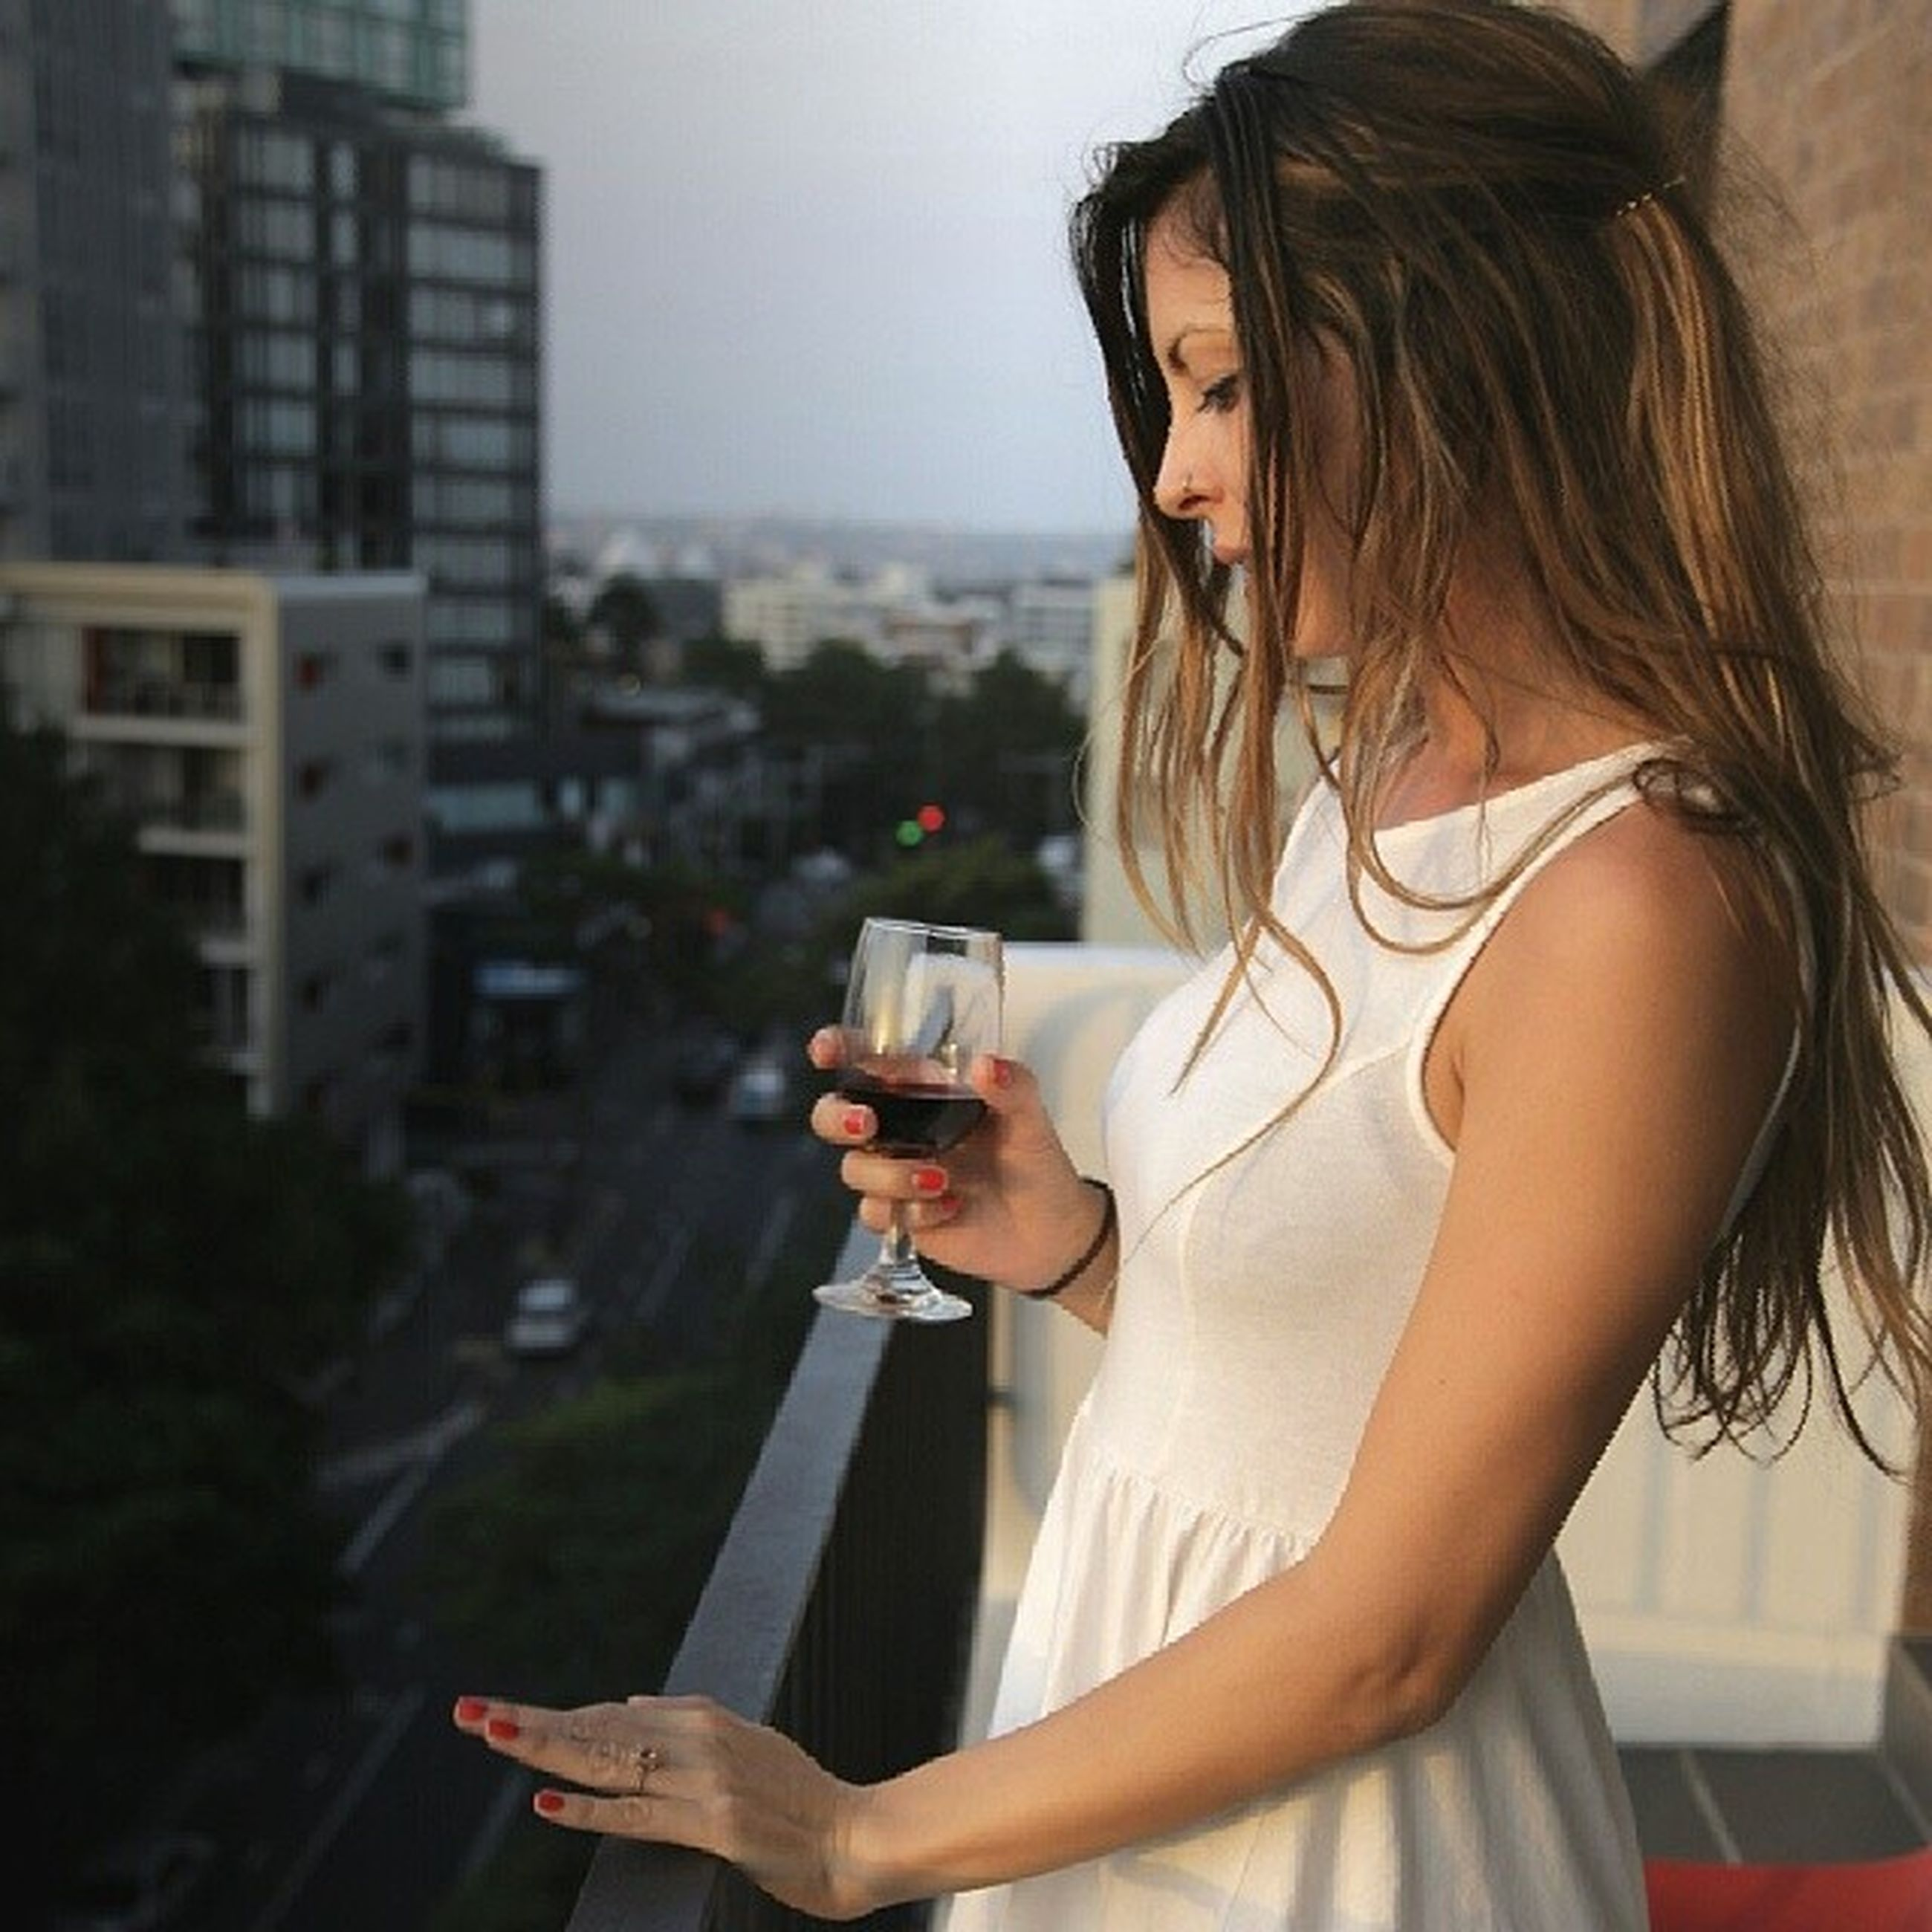 young adult, holding, lifestyles, person, wireless technology, focus on foreground, leisure activity, young women, technology, smart phone, communication, headshot, casual clothing, mobile phone, photography themes, waist up, indoors